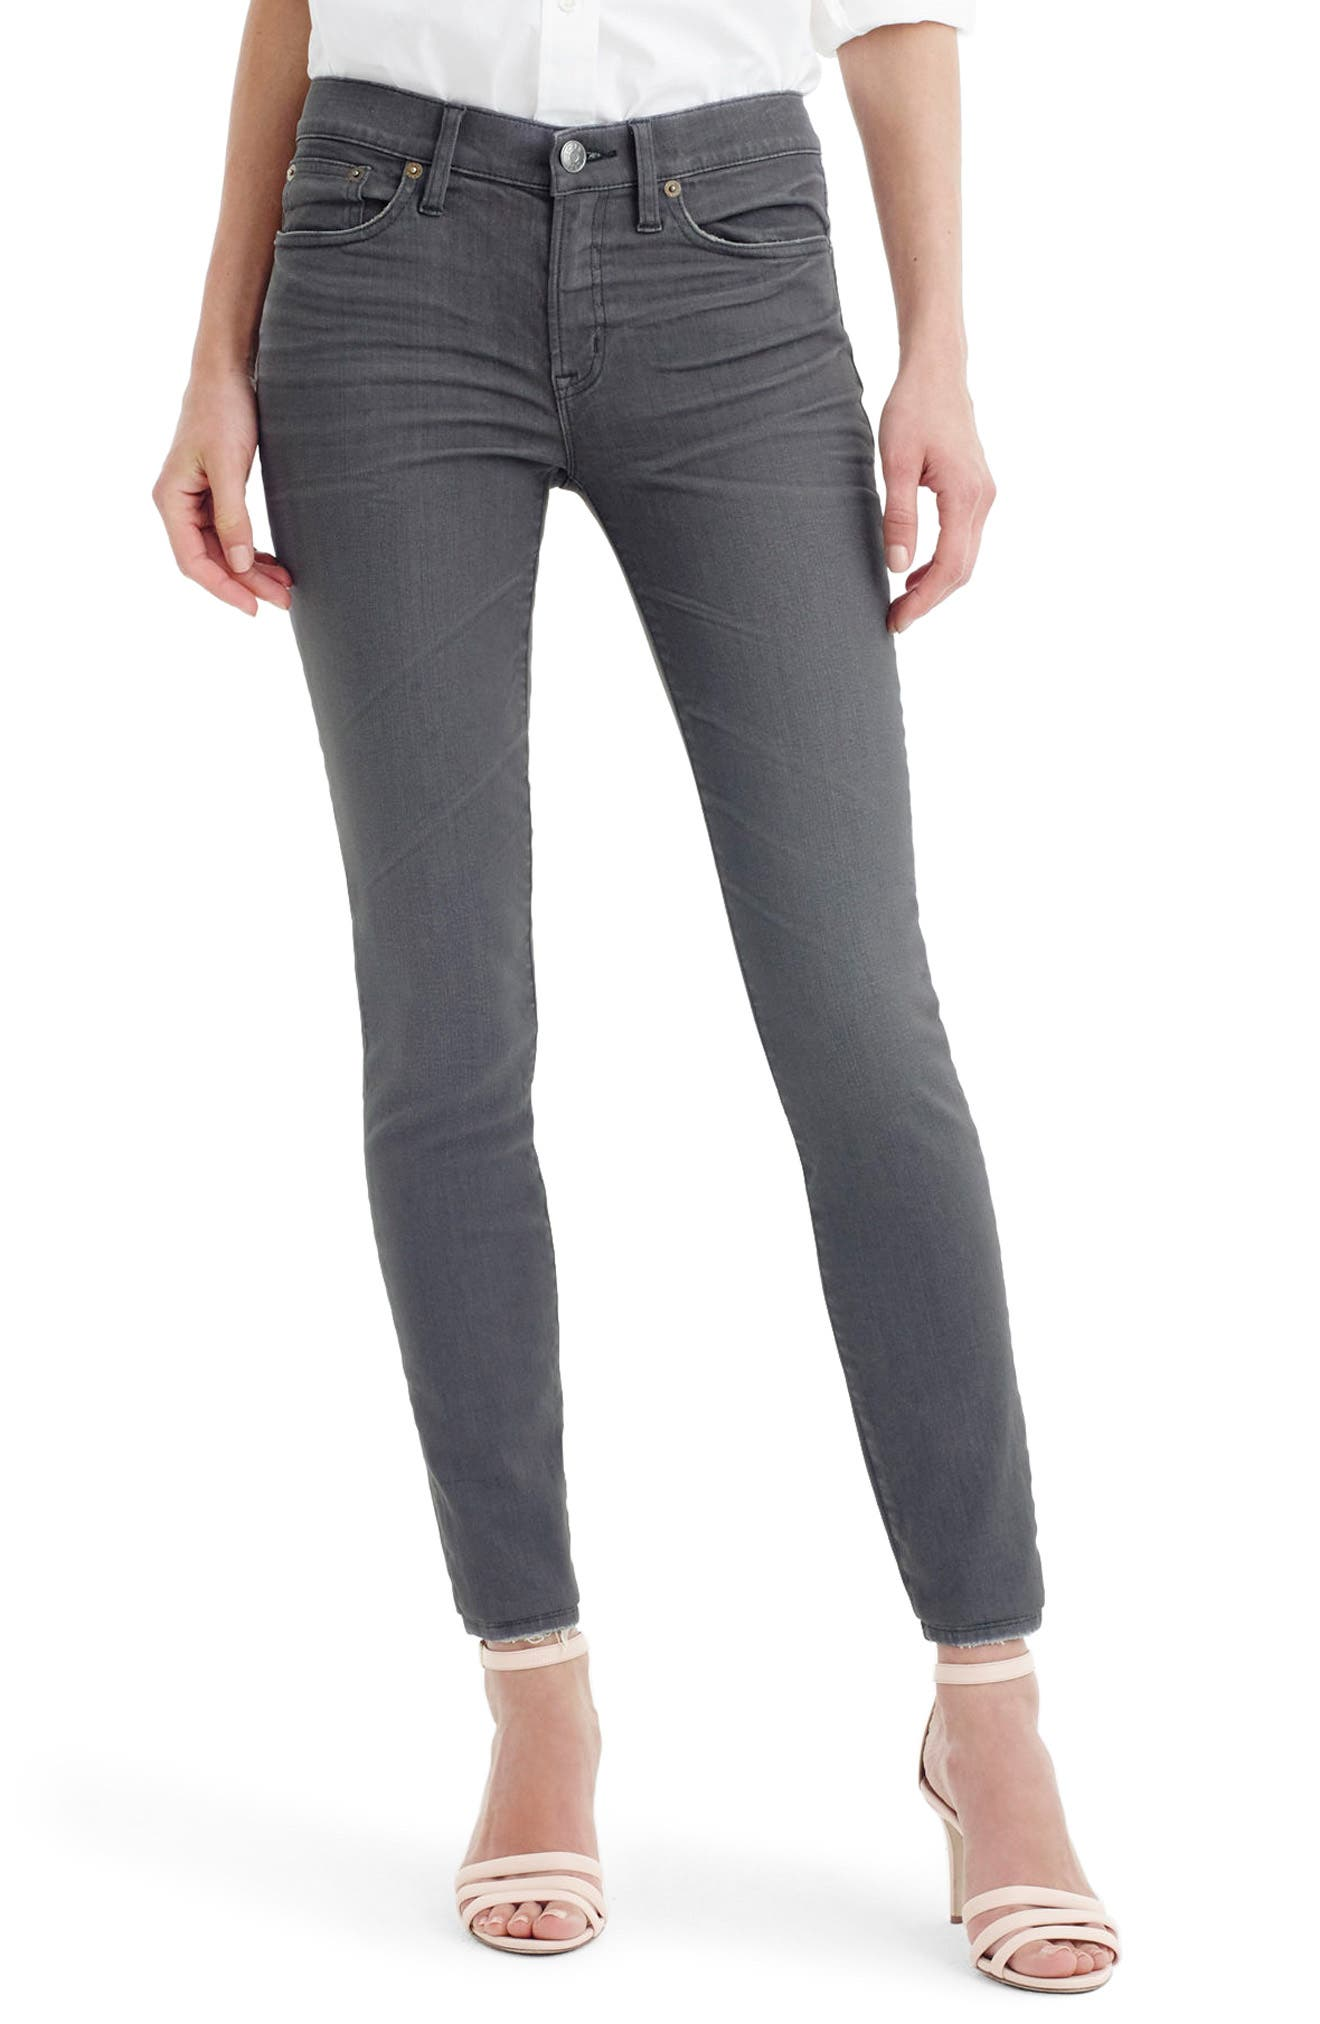 Toothpick Jeans,                         Main,                         color, Grey Dove